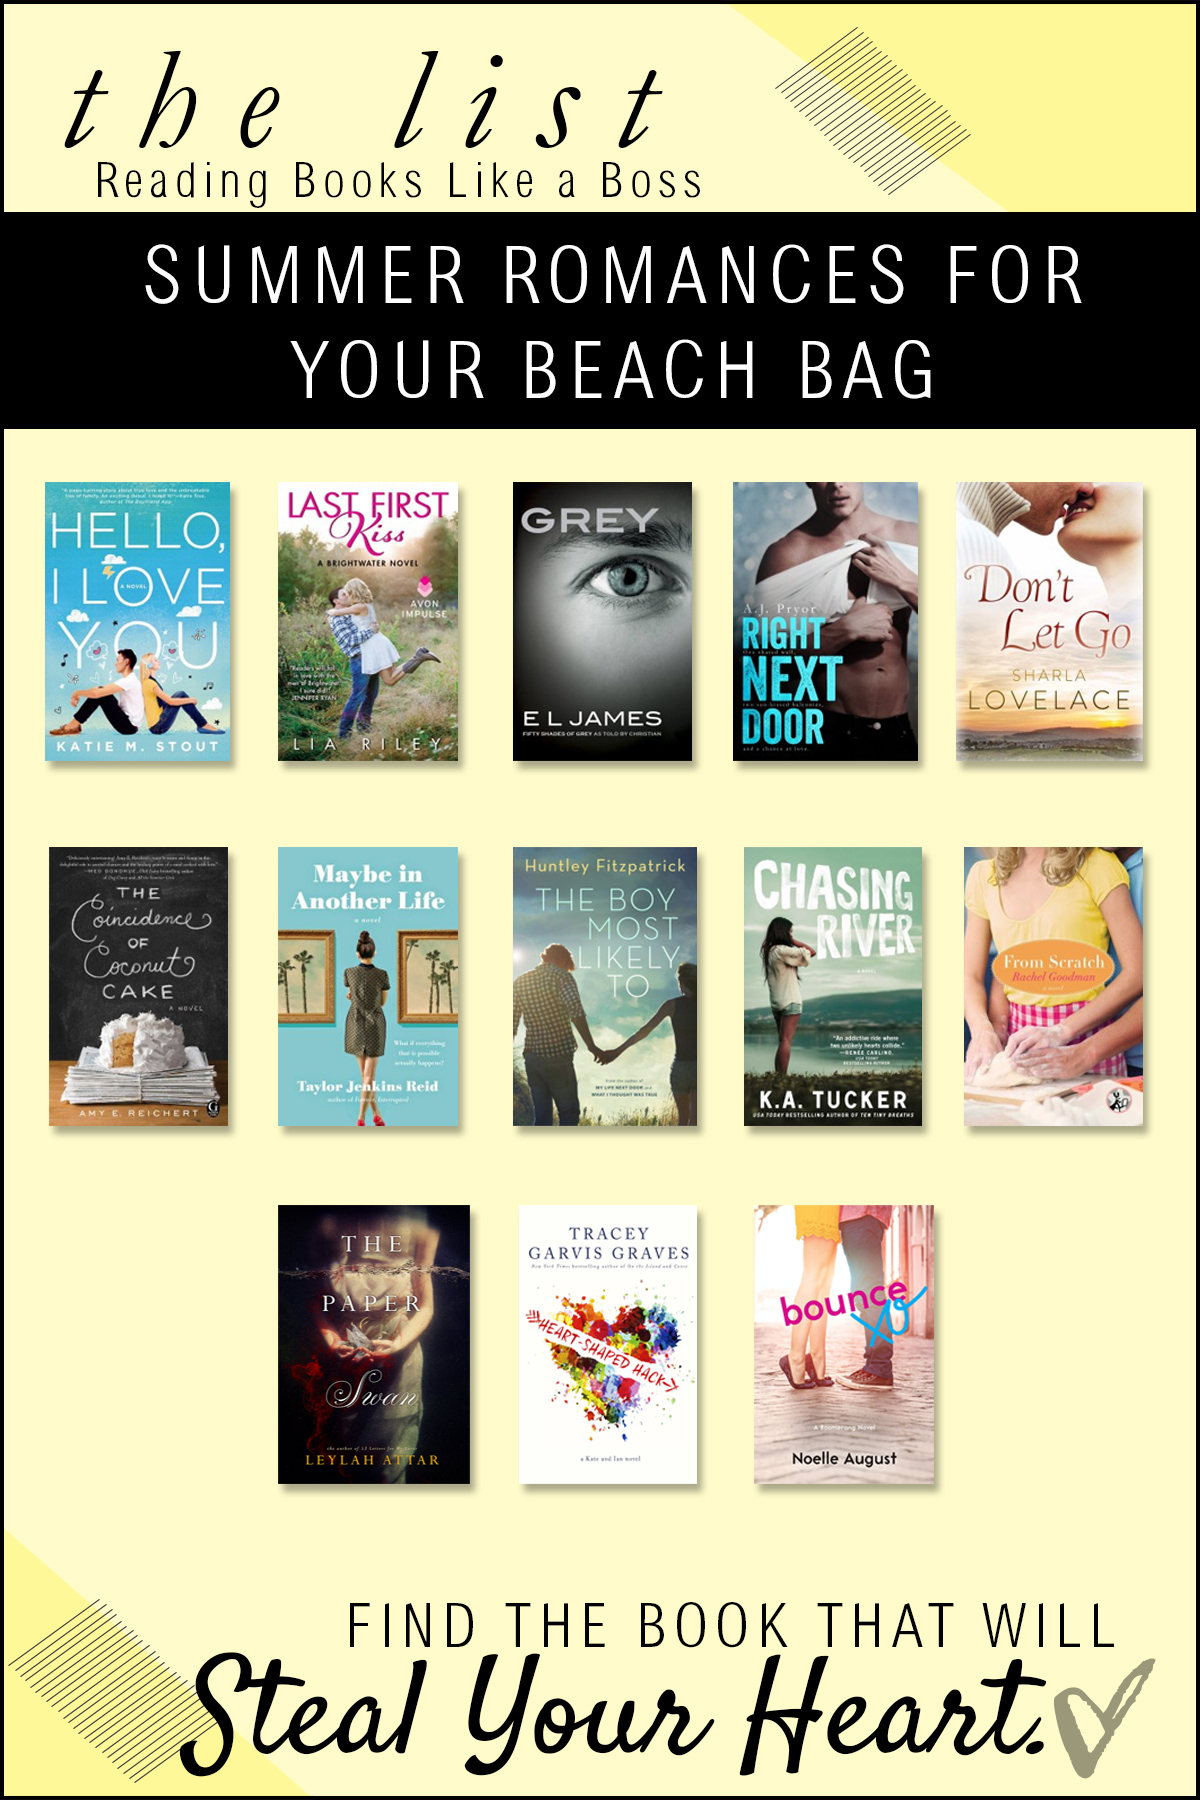 Summer Romance Books for Your Beach Bag via Reading Books Like a Boss